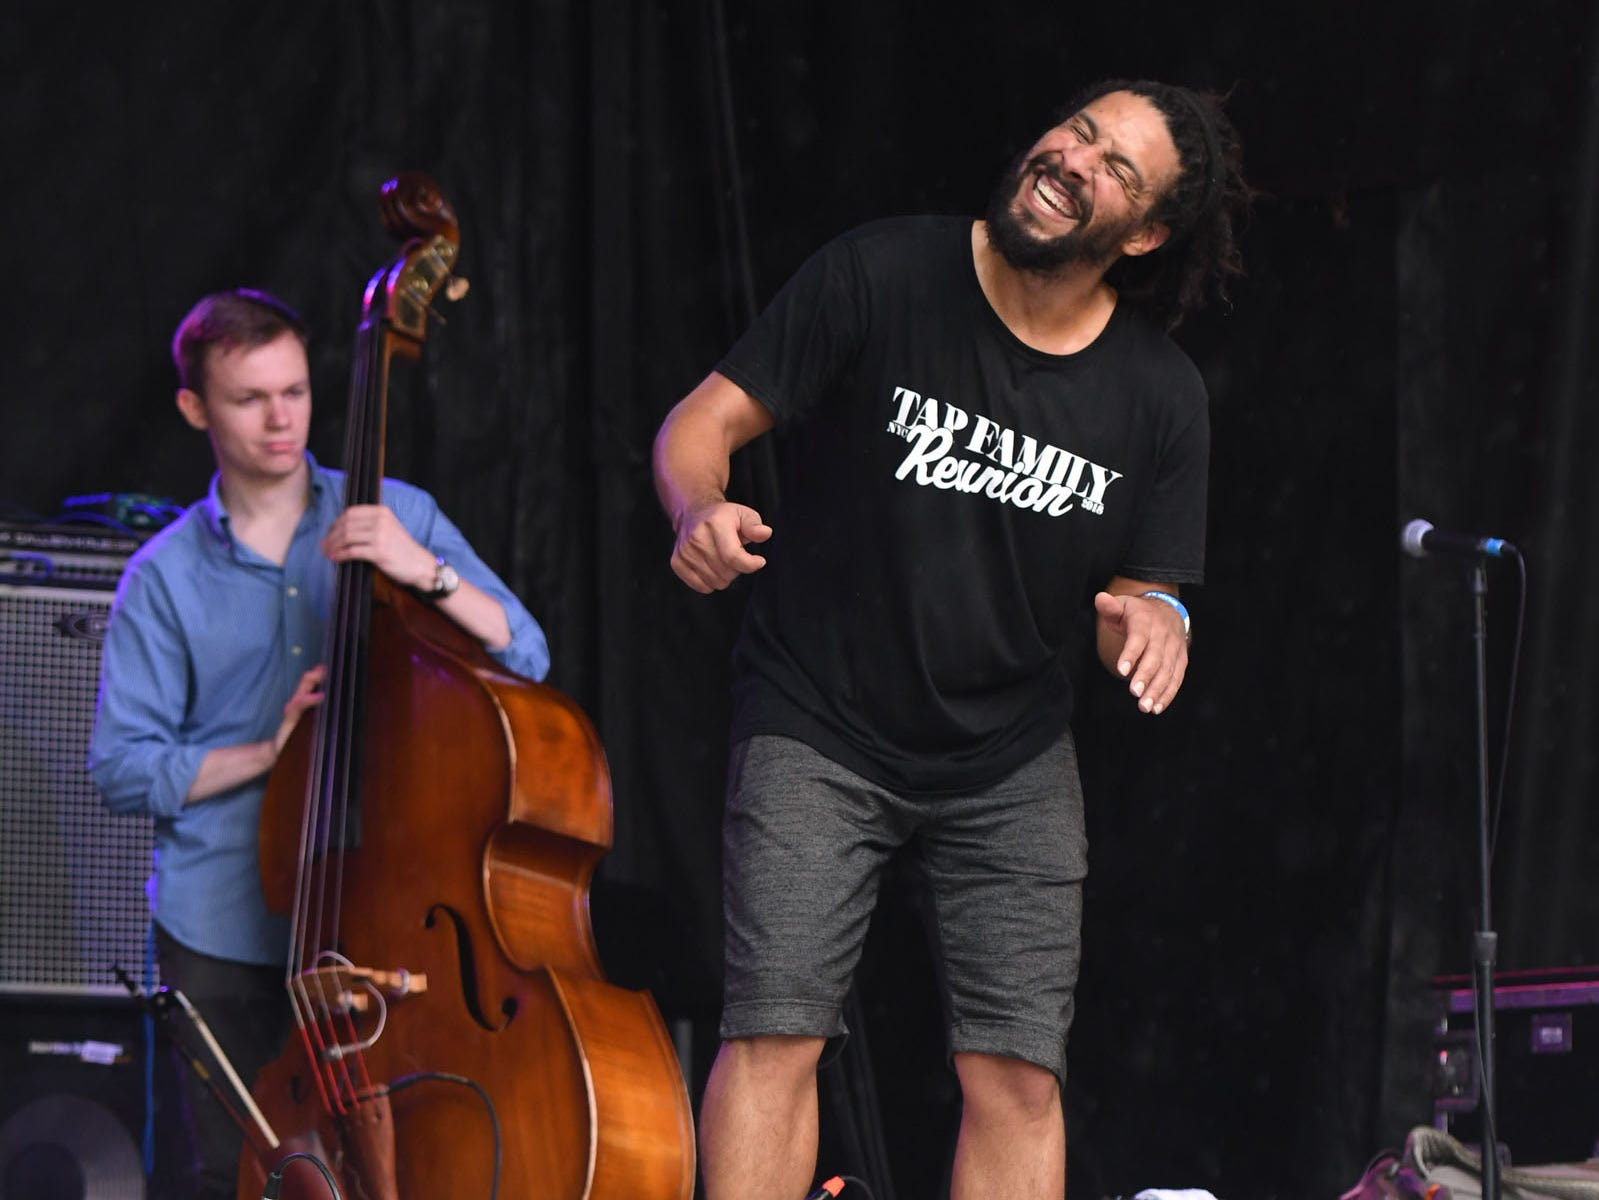 Jason Samuels Smith performs during the 78th National Folk Festival in Salisbury, Md. on Saturday, Sept. 8, 2018.